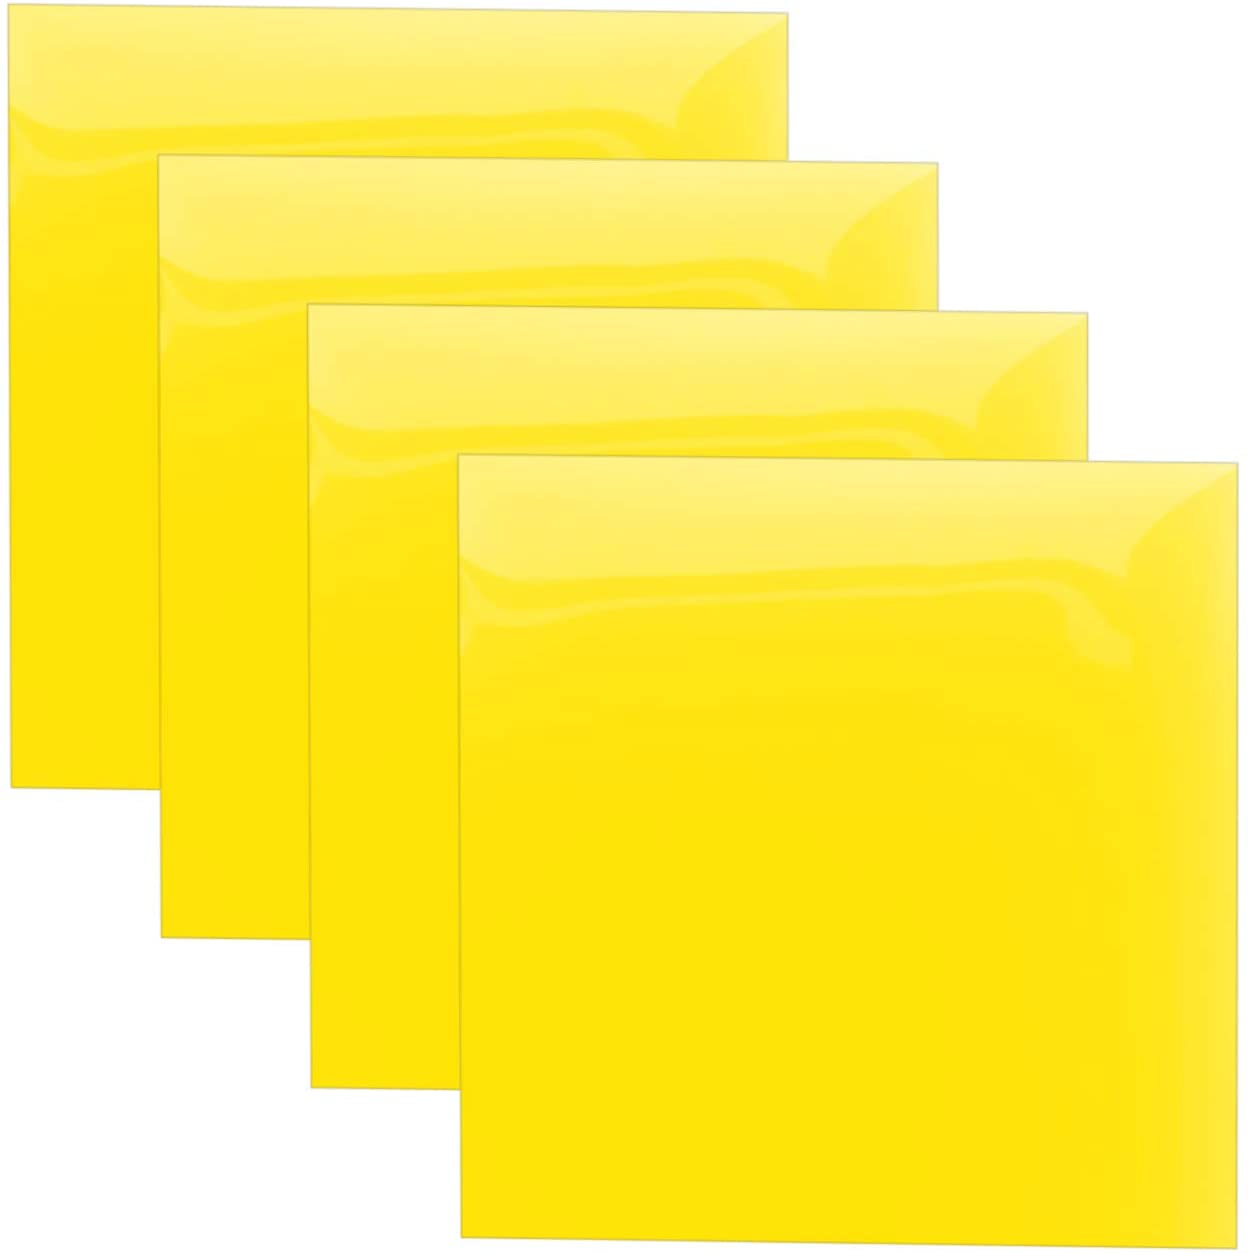 Yellow Heat Transfer Vinyl Sheets, HTV Vinyl Bundle Iron on for T Shirts, Fabric, Clothing - 12 x 12 - 4 Pcs for Cricut, Silhouette Cameo and Other Cutter Machines